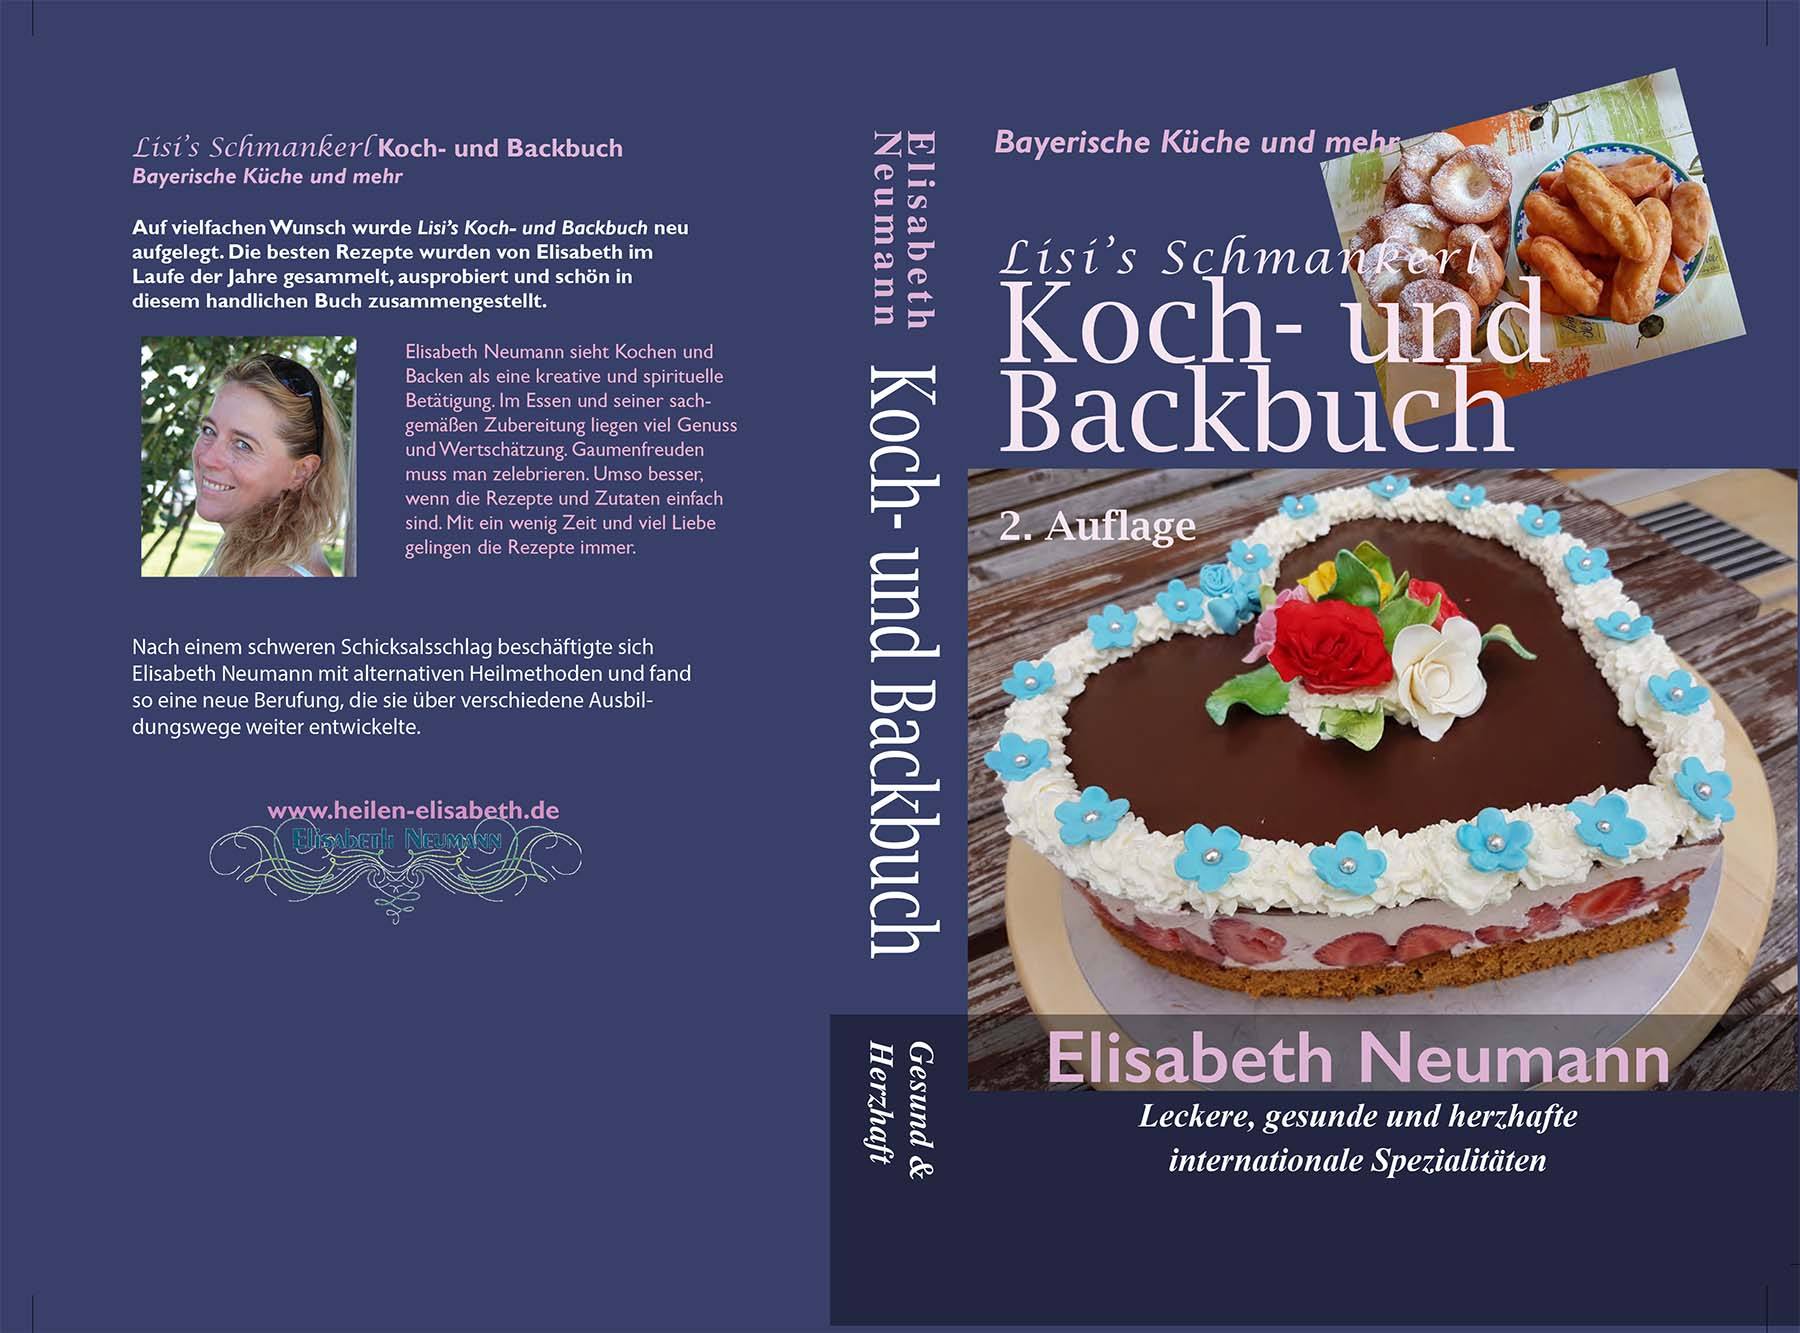 Elisabeth Neumann cookbook cover